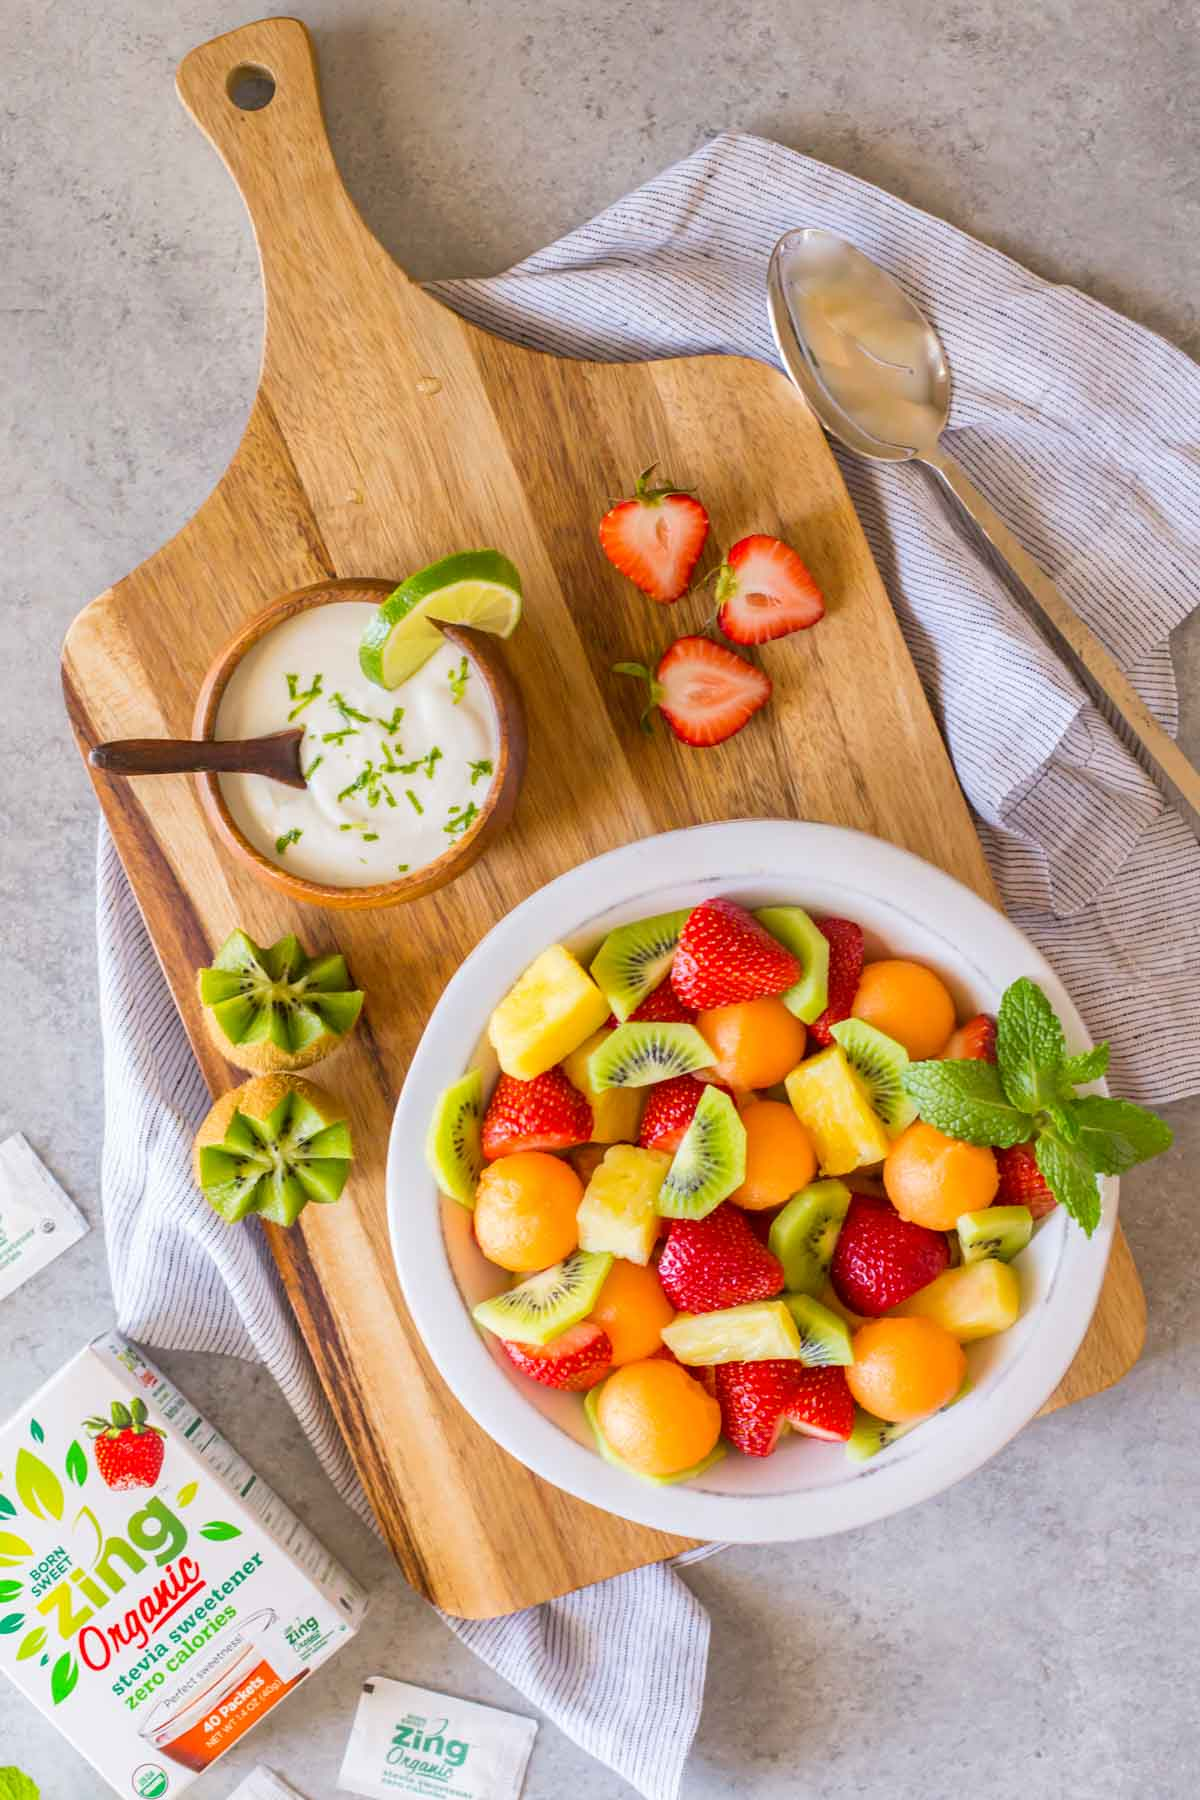 A bowl of Summer Fruit Salad sitting on a cutting board along with a small bowl of Coconut Lime Yogurt and some strawberries and kiwis, with a box of Born Sweet Zing Organic Stevia Sweetener next to the board.